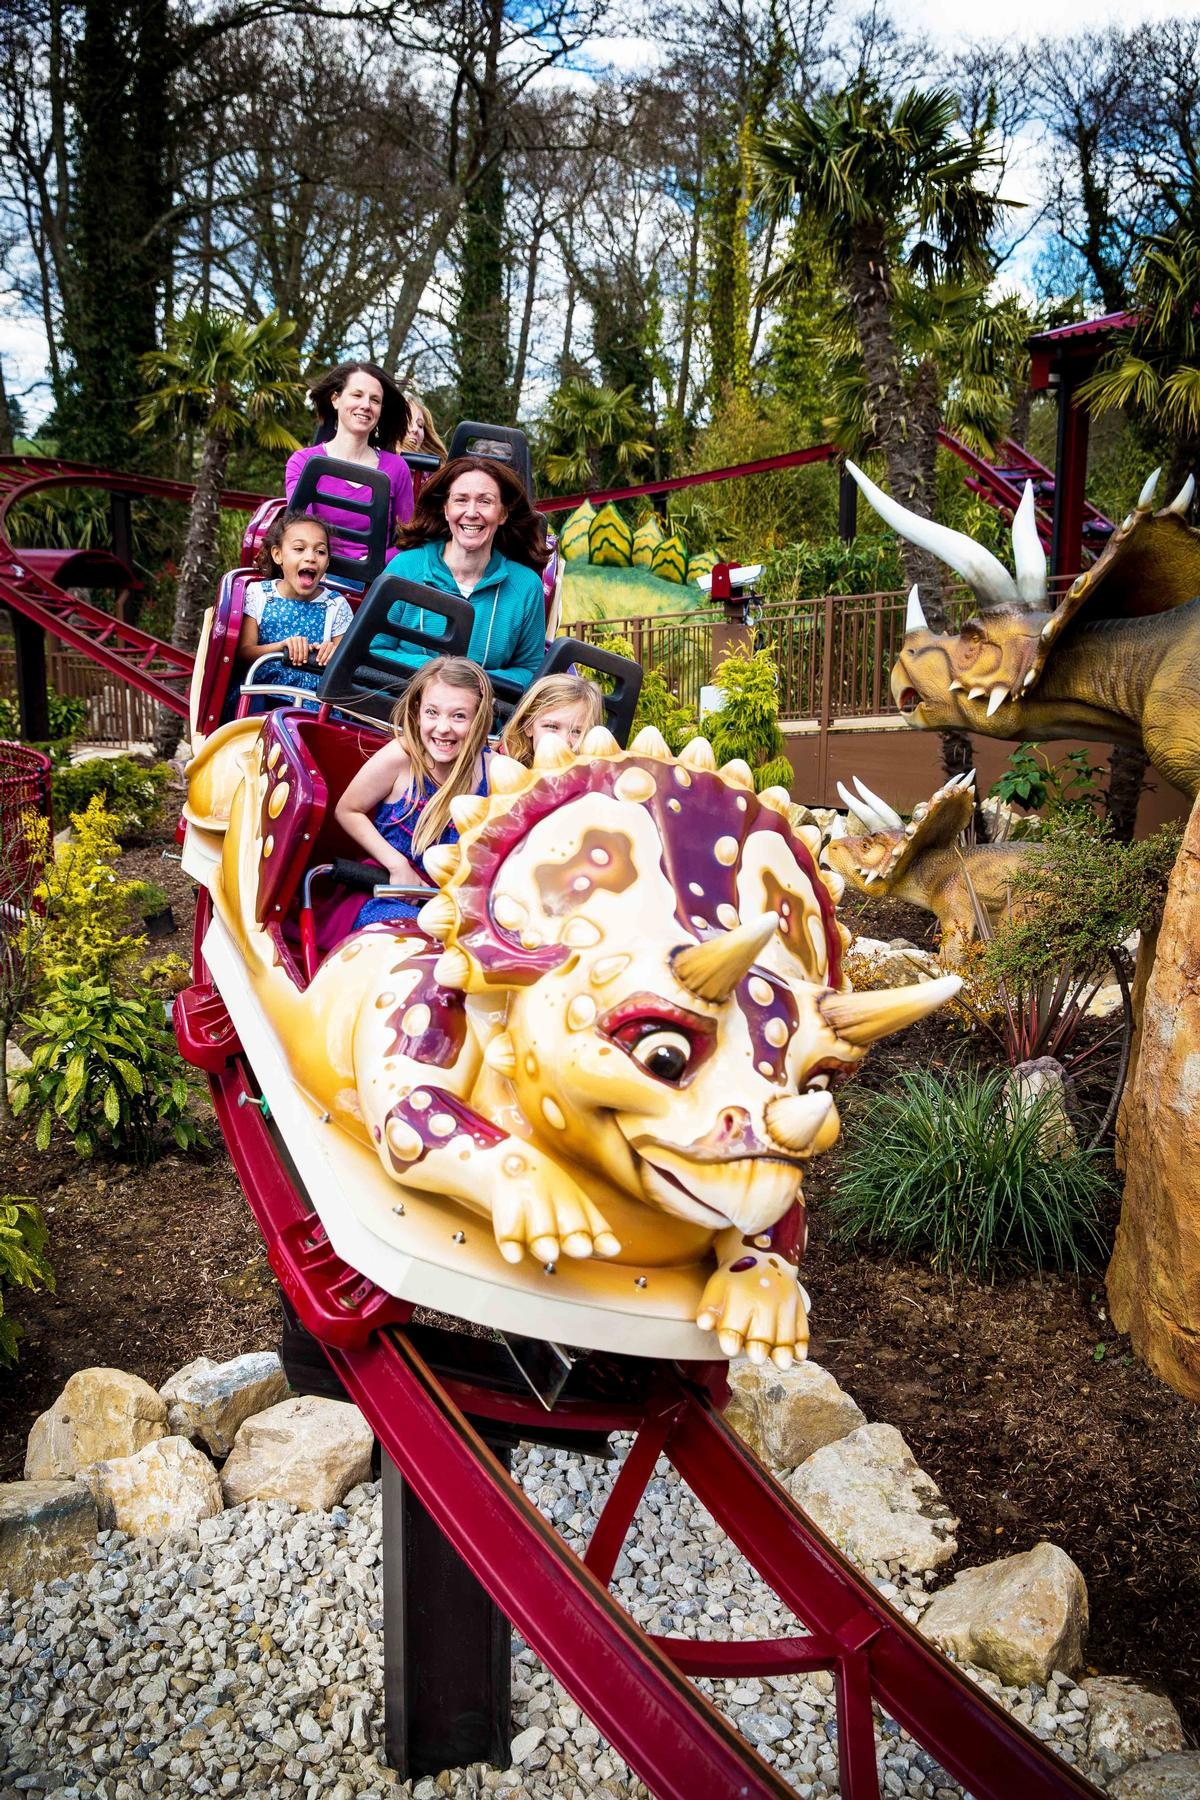 Younger visitors can board the 23kmh Dino-Chase rollercoaster